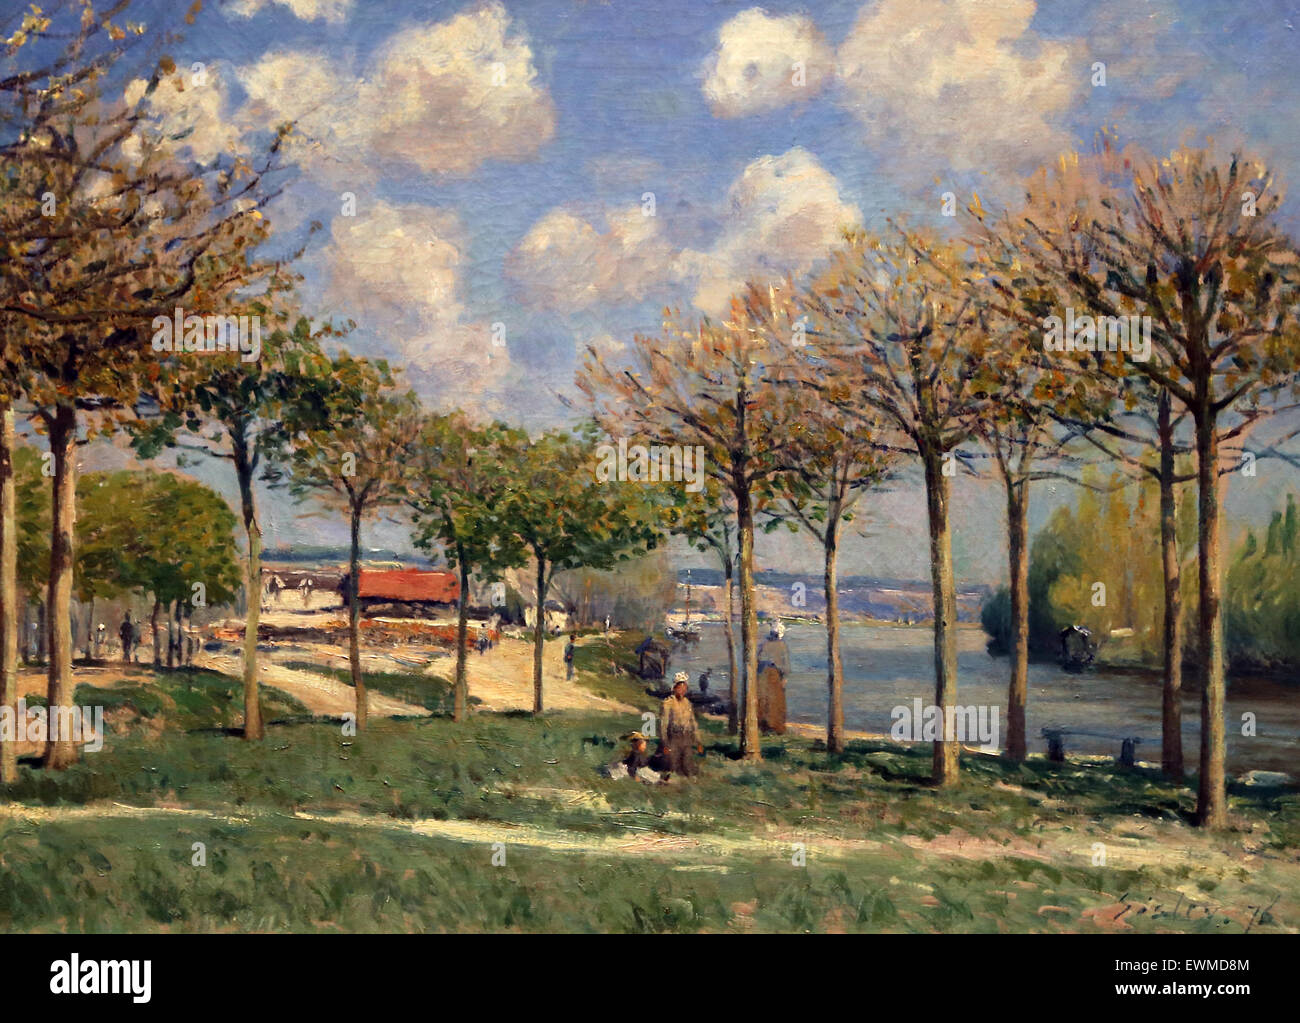 Alfred Sisley (1839-1899). French painter. The Seine at Bougival, 1876. Oil on canvas. Metropolitan Museum of Art. - Stock Image